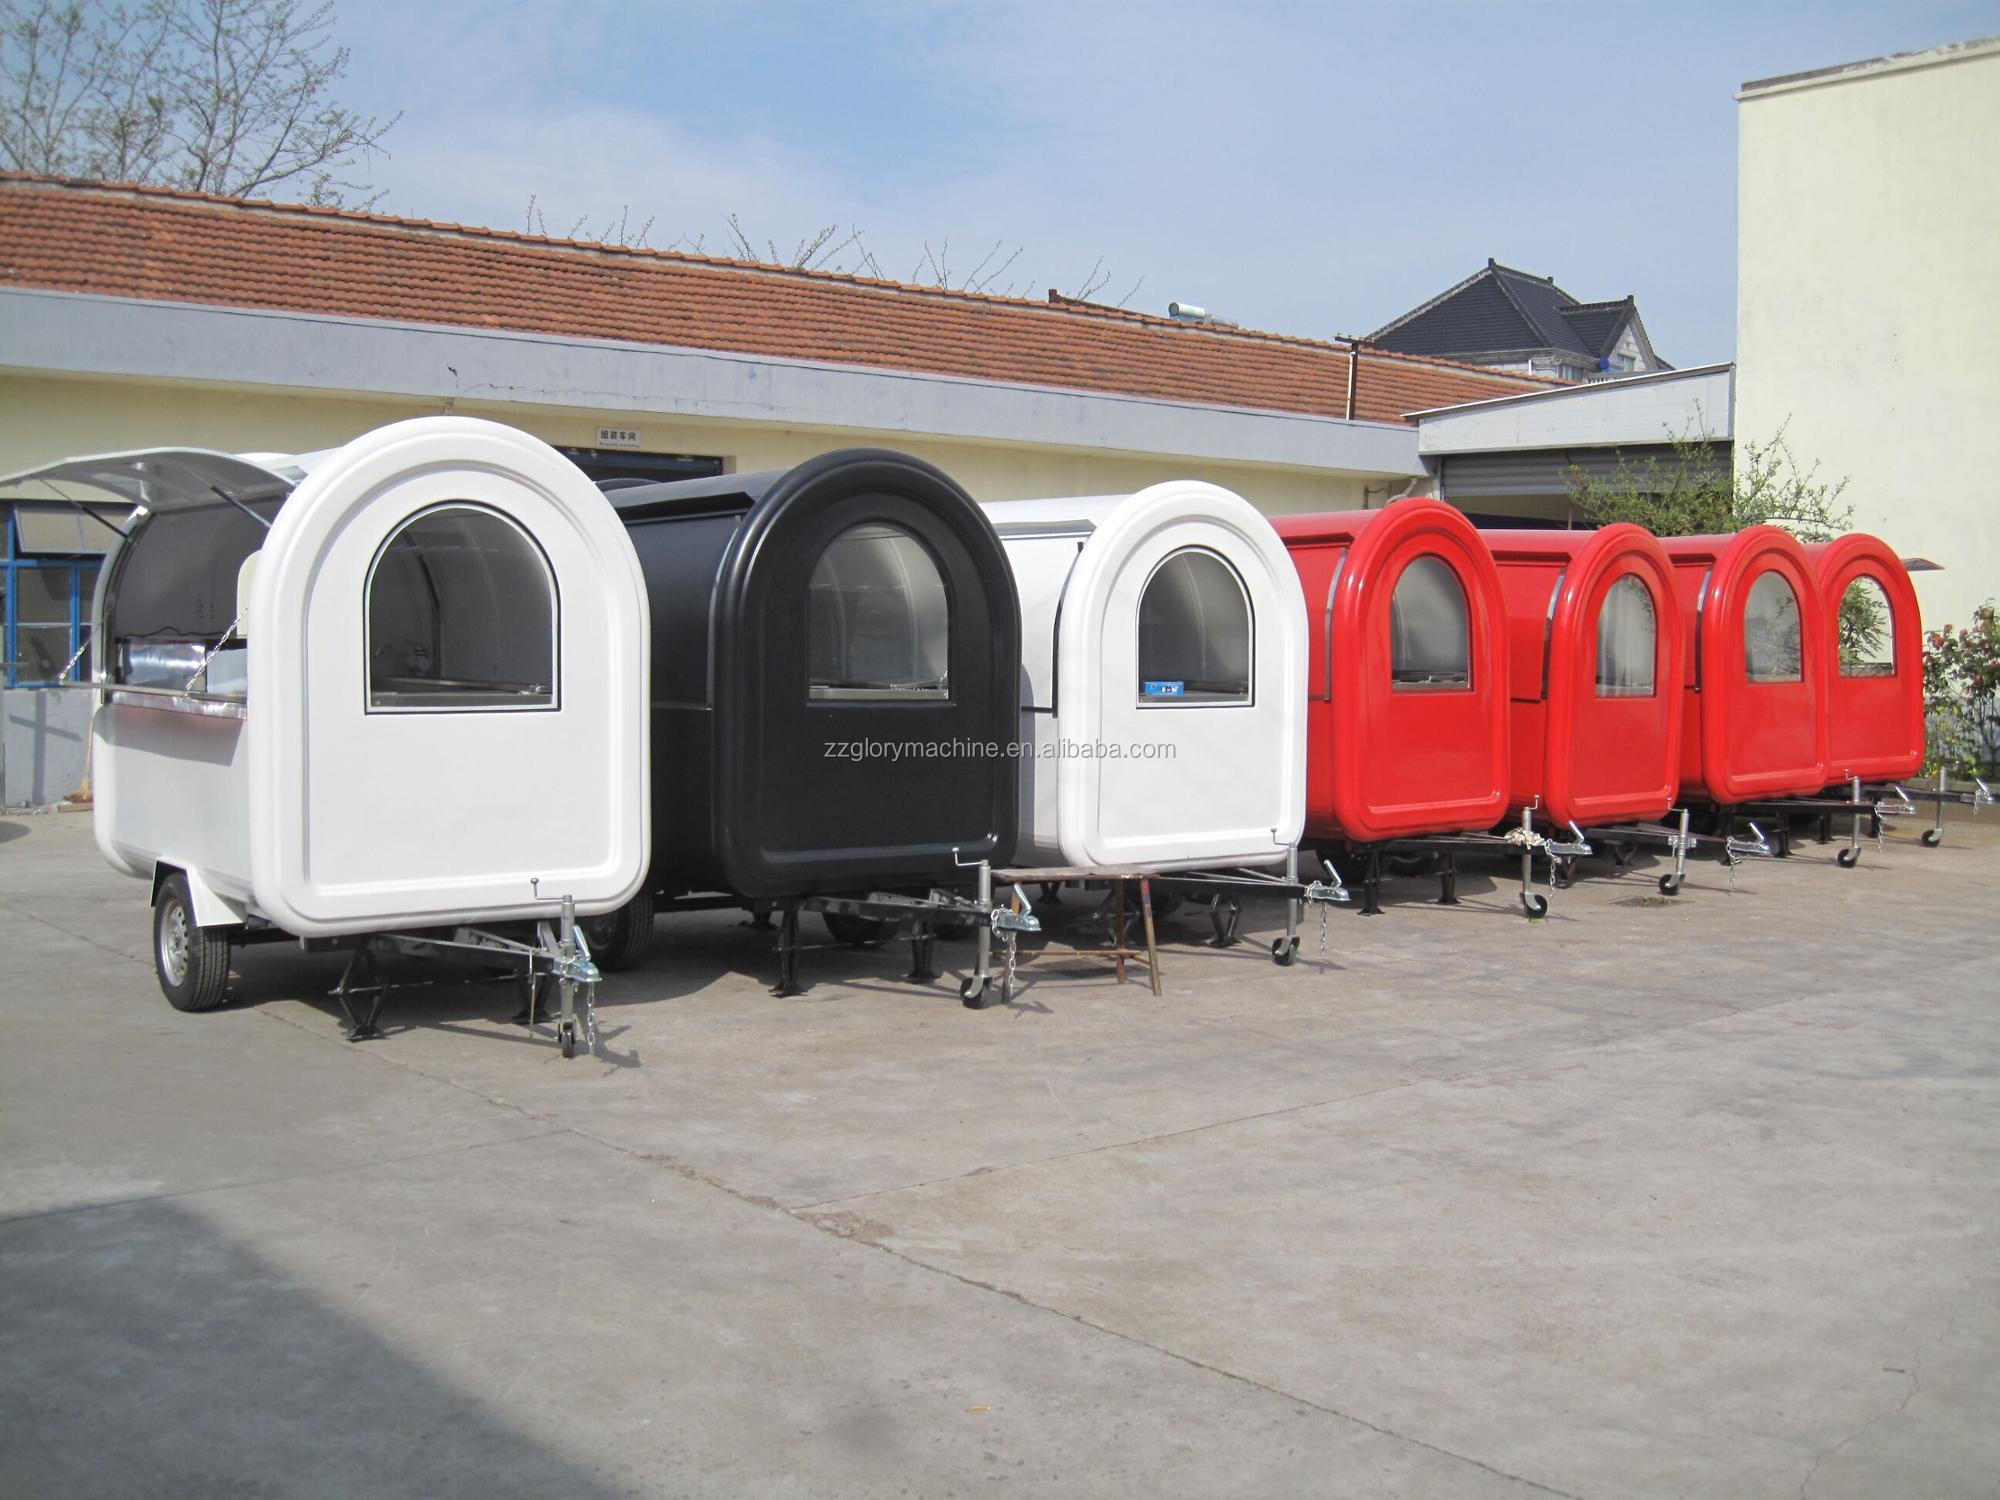 China Supplier CE Certificate Custom Street Mobile Food Truck, Mini Mobile Fast Food Cart Trailer For Ice Cream, Hot Dog